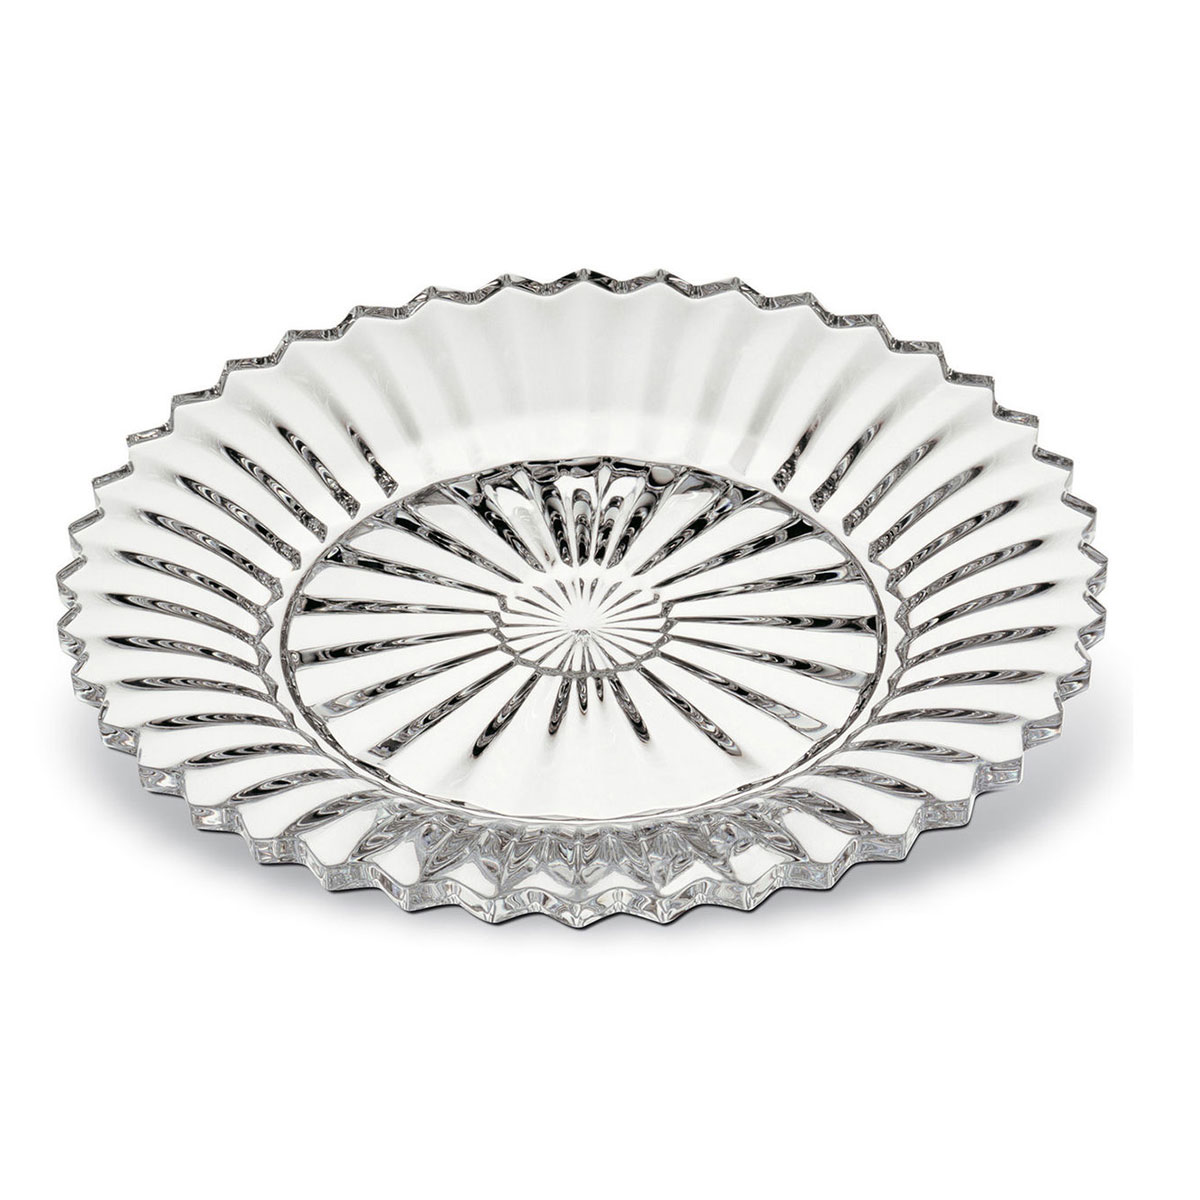 "Baccarat Crystal, Mille Nuits 7 1/2"" Salad Plate, Single"